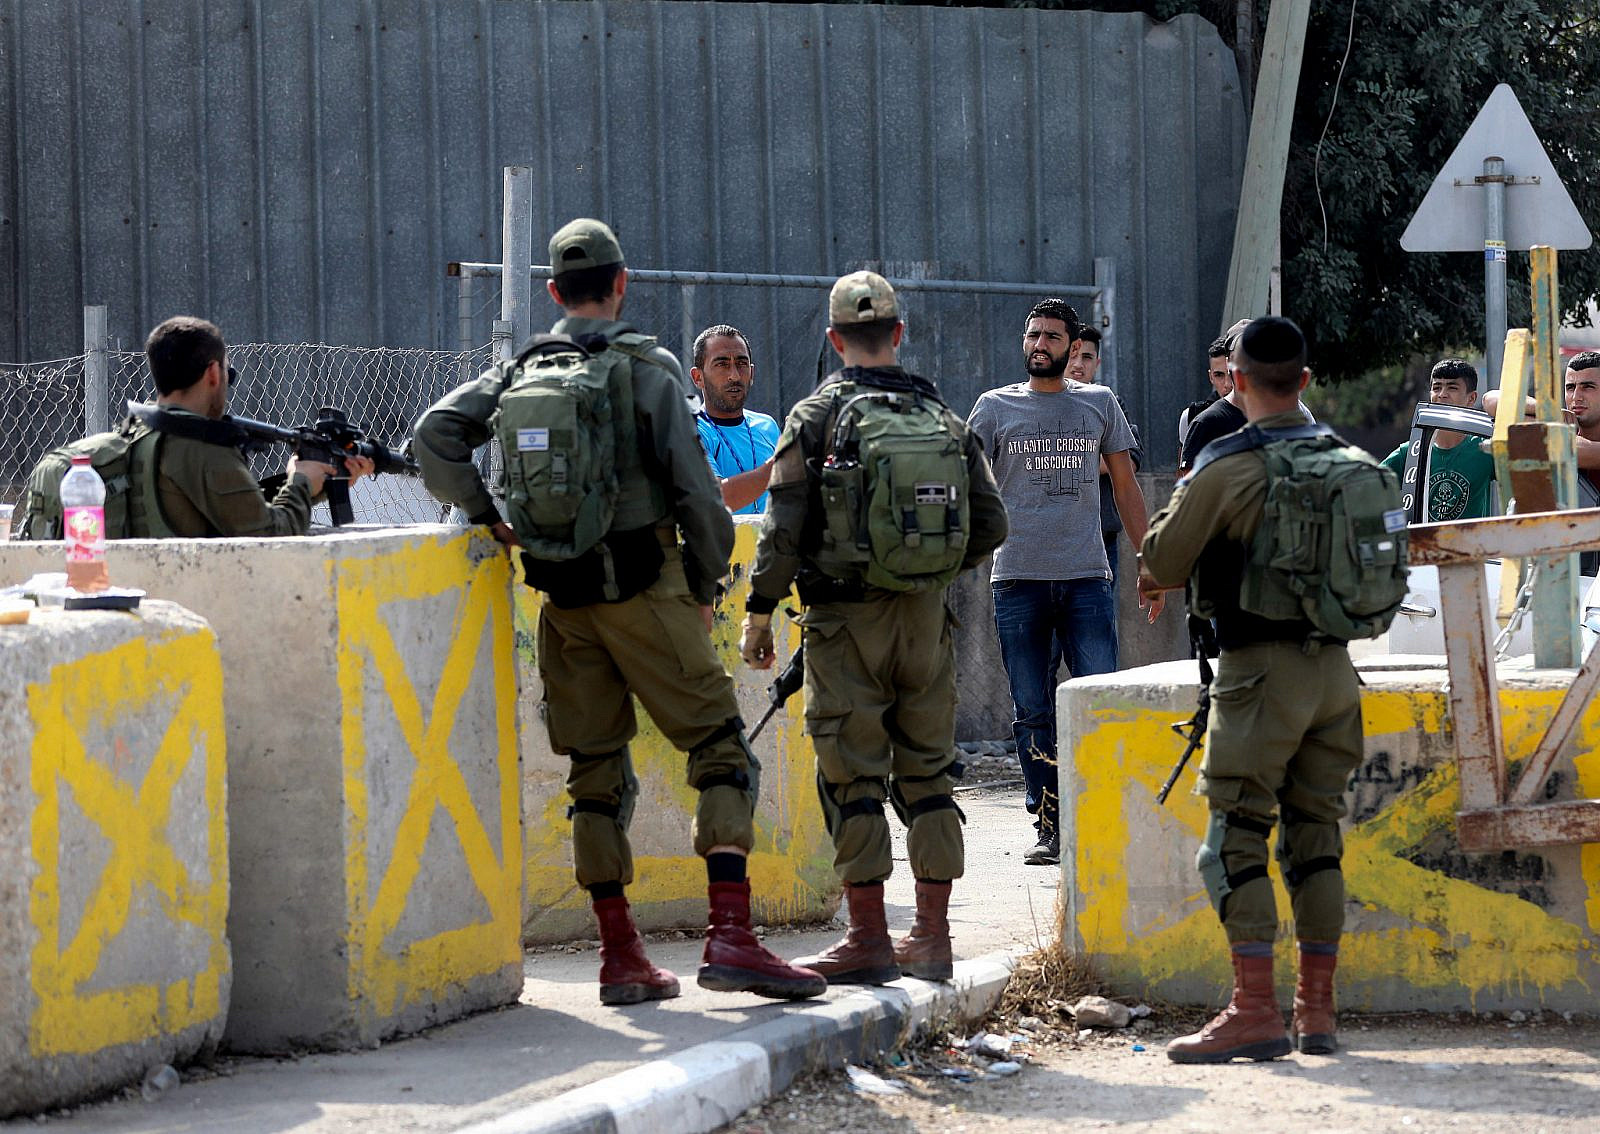 Israeli soldiers at a checkpoint in the West Bank city of Hebron. October 17, 2019. (Wisam Hashlamoun/Flash90)